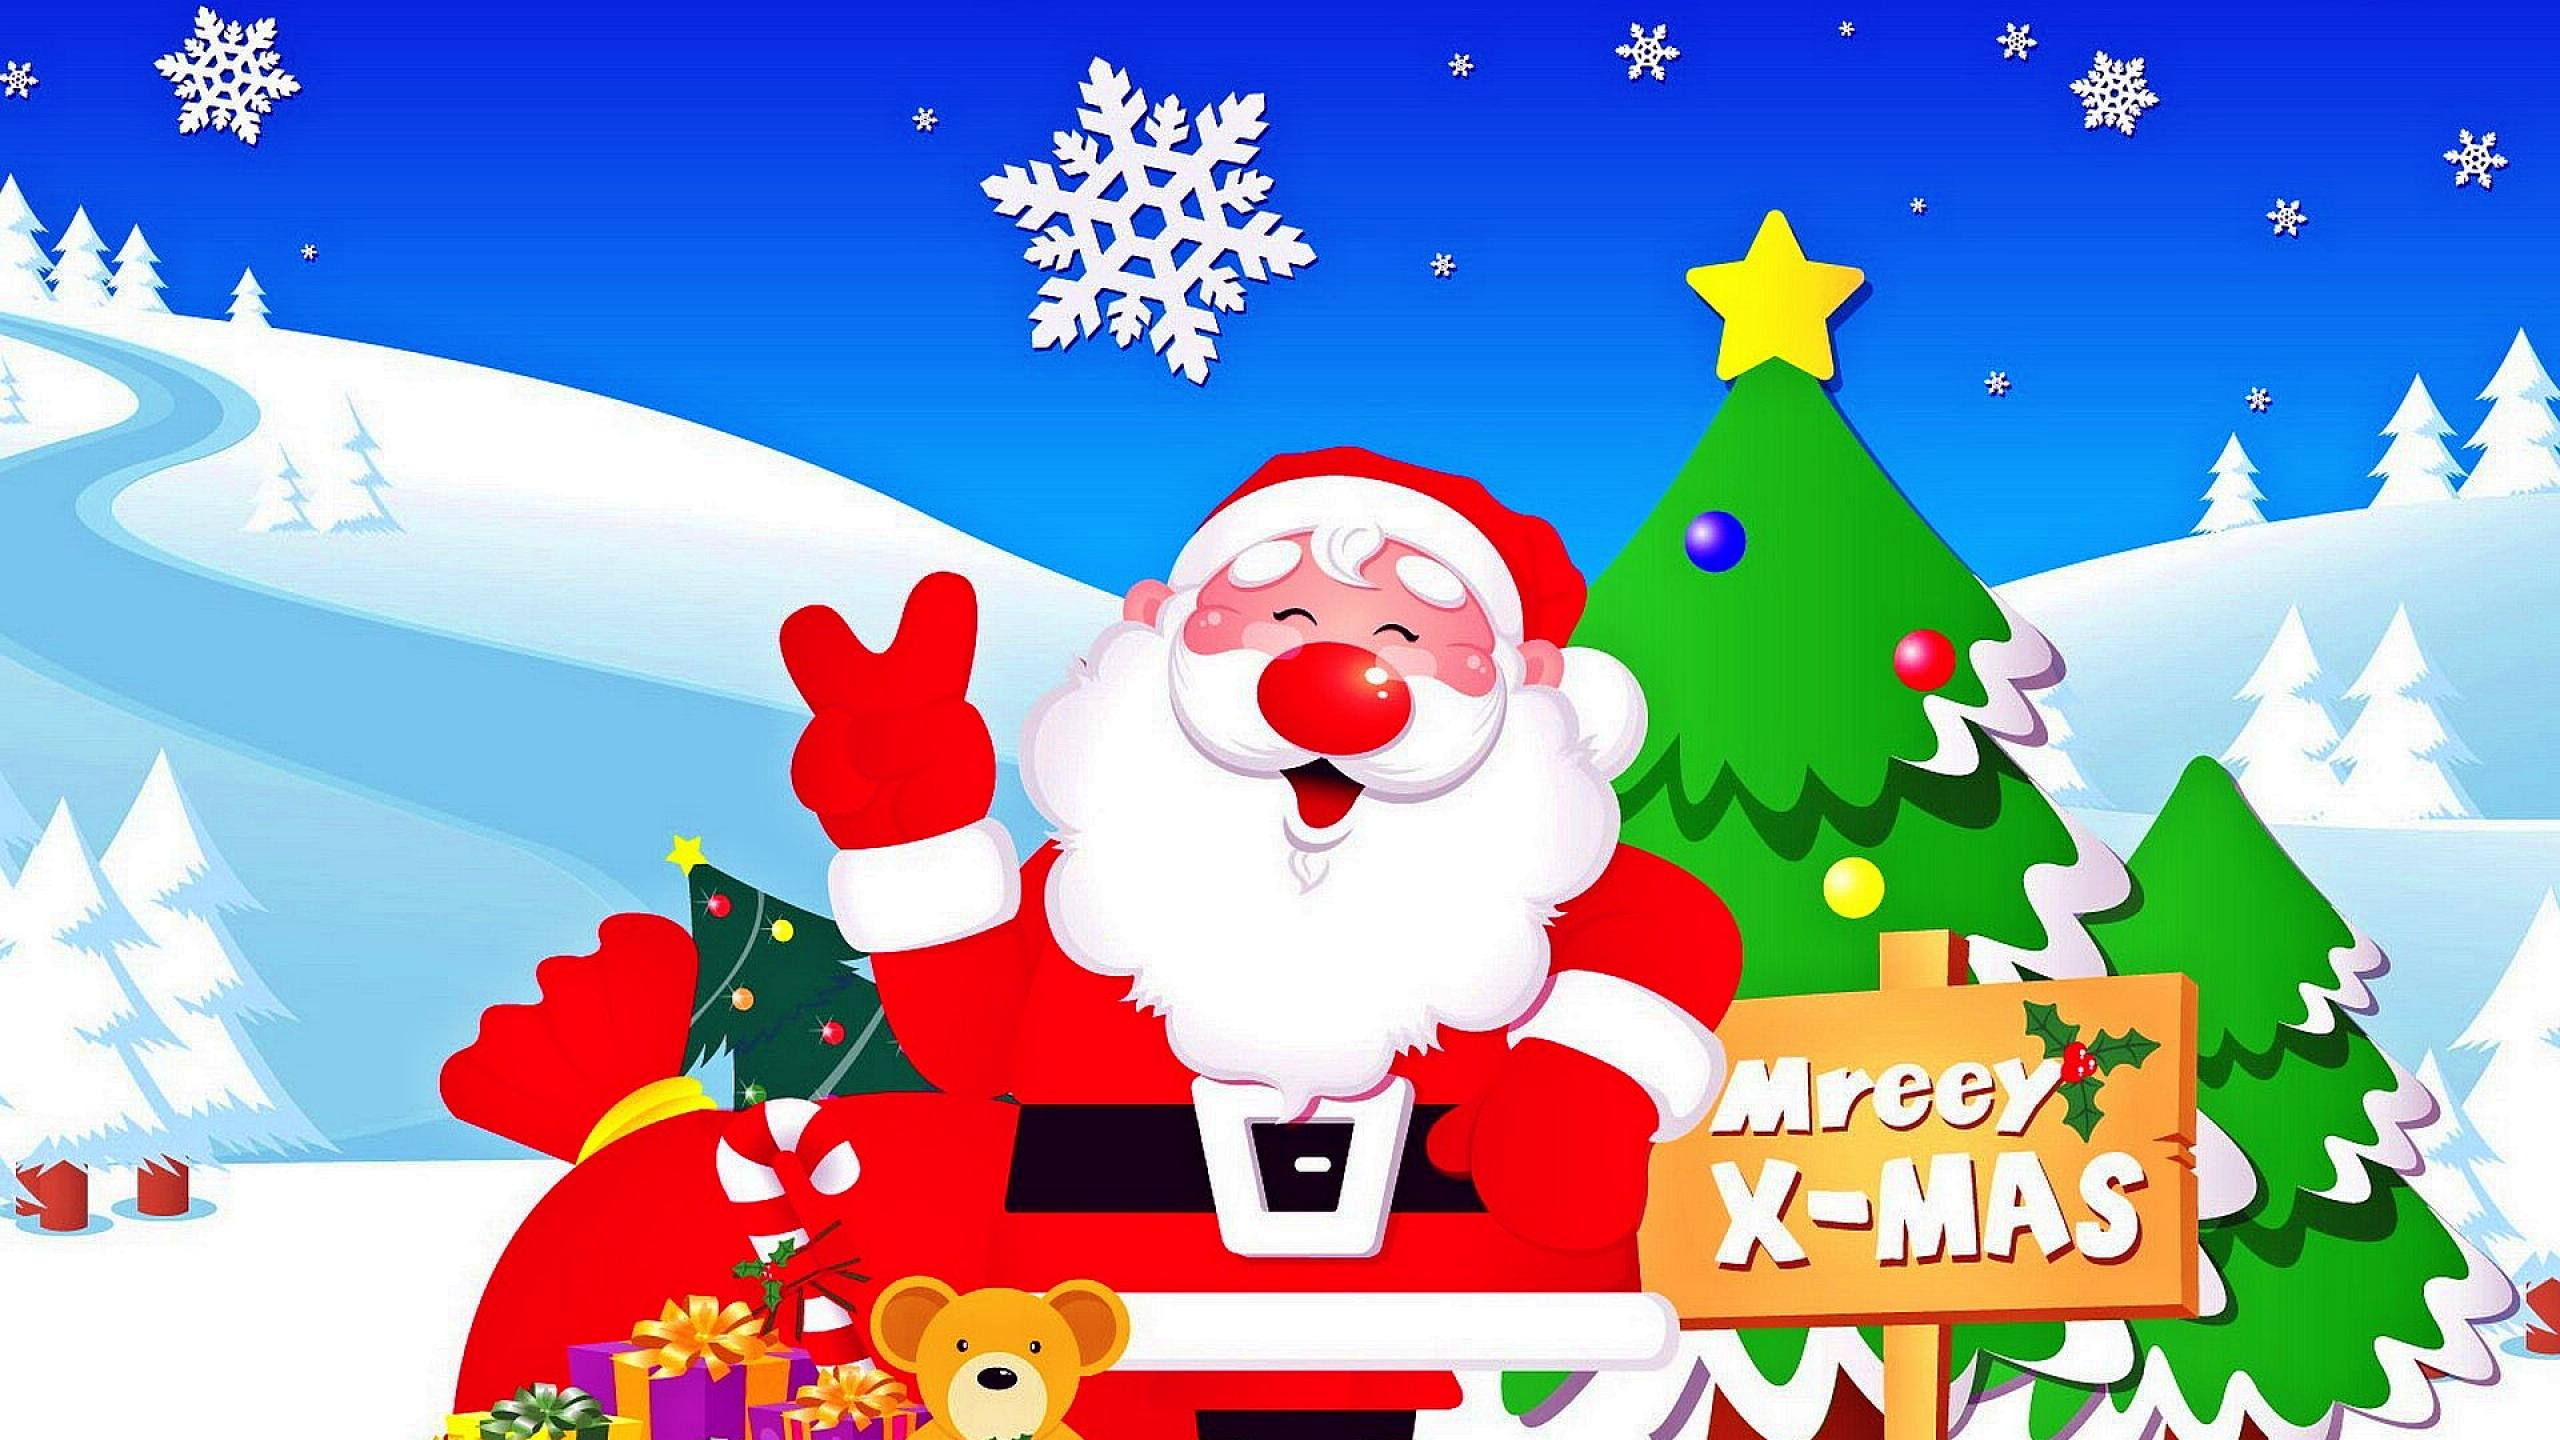 Download Cute Christmas Wallpapers 2560x1440